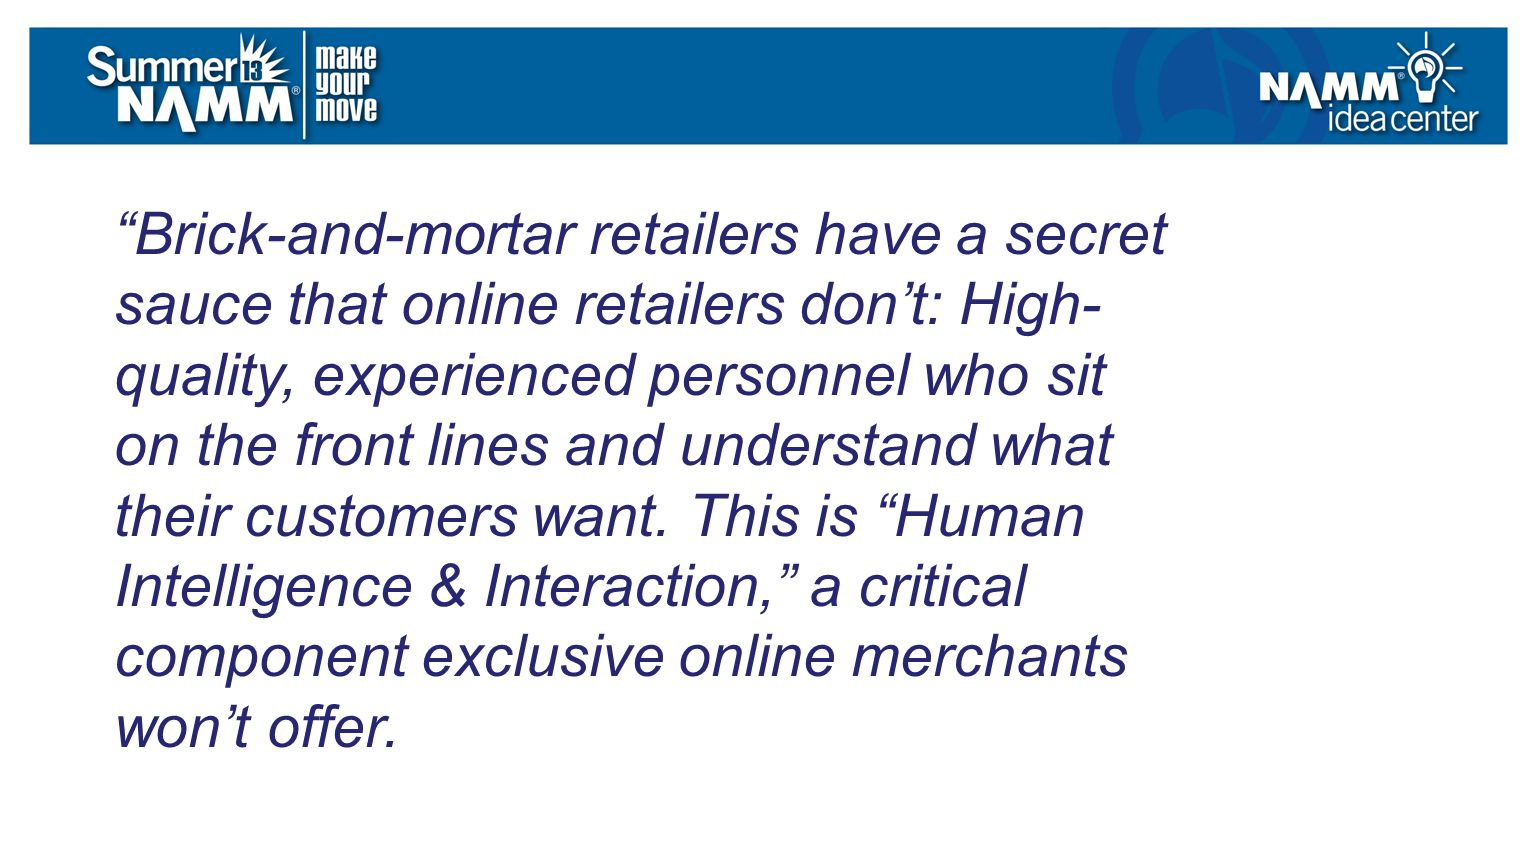 Brick-and-mortar retailers have a secret sauce that online retailers don't: High- quality, experienced personnel who sit on the front lines and understand what their customers want.